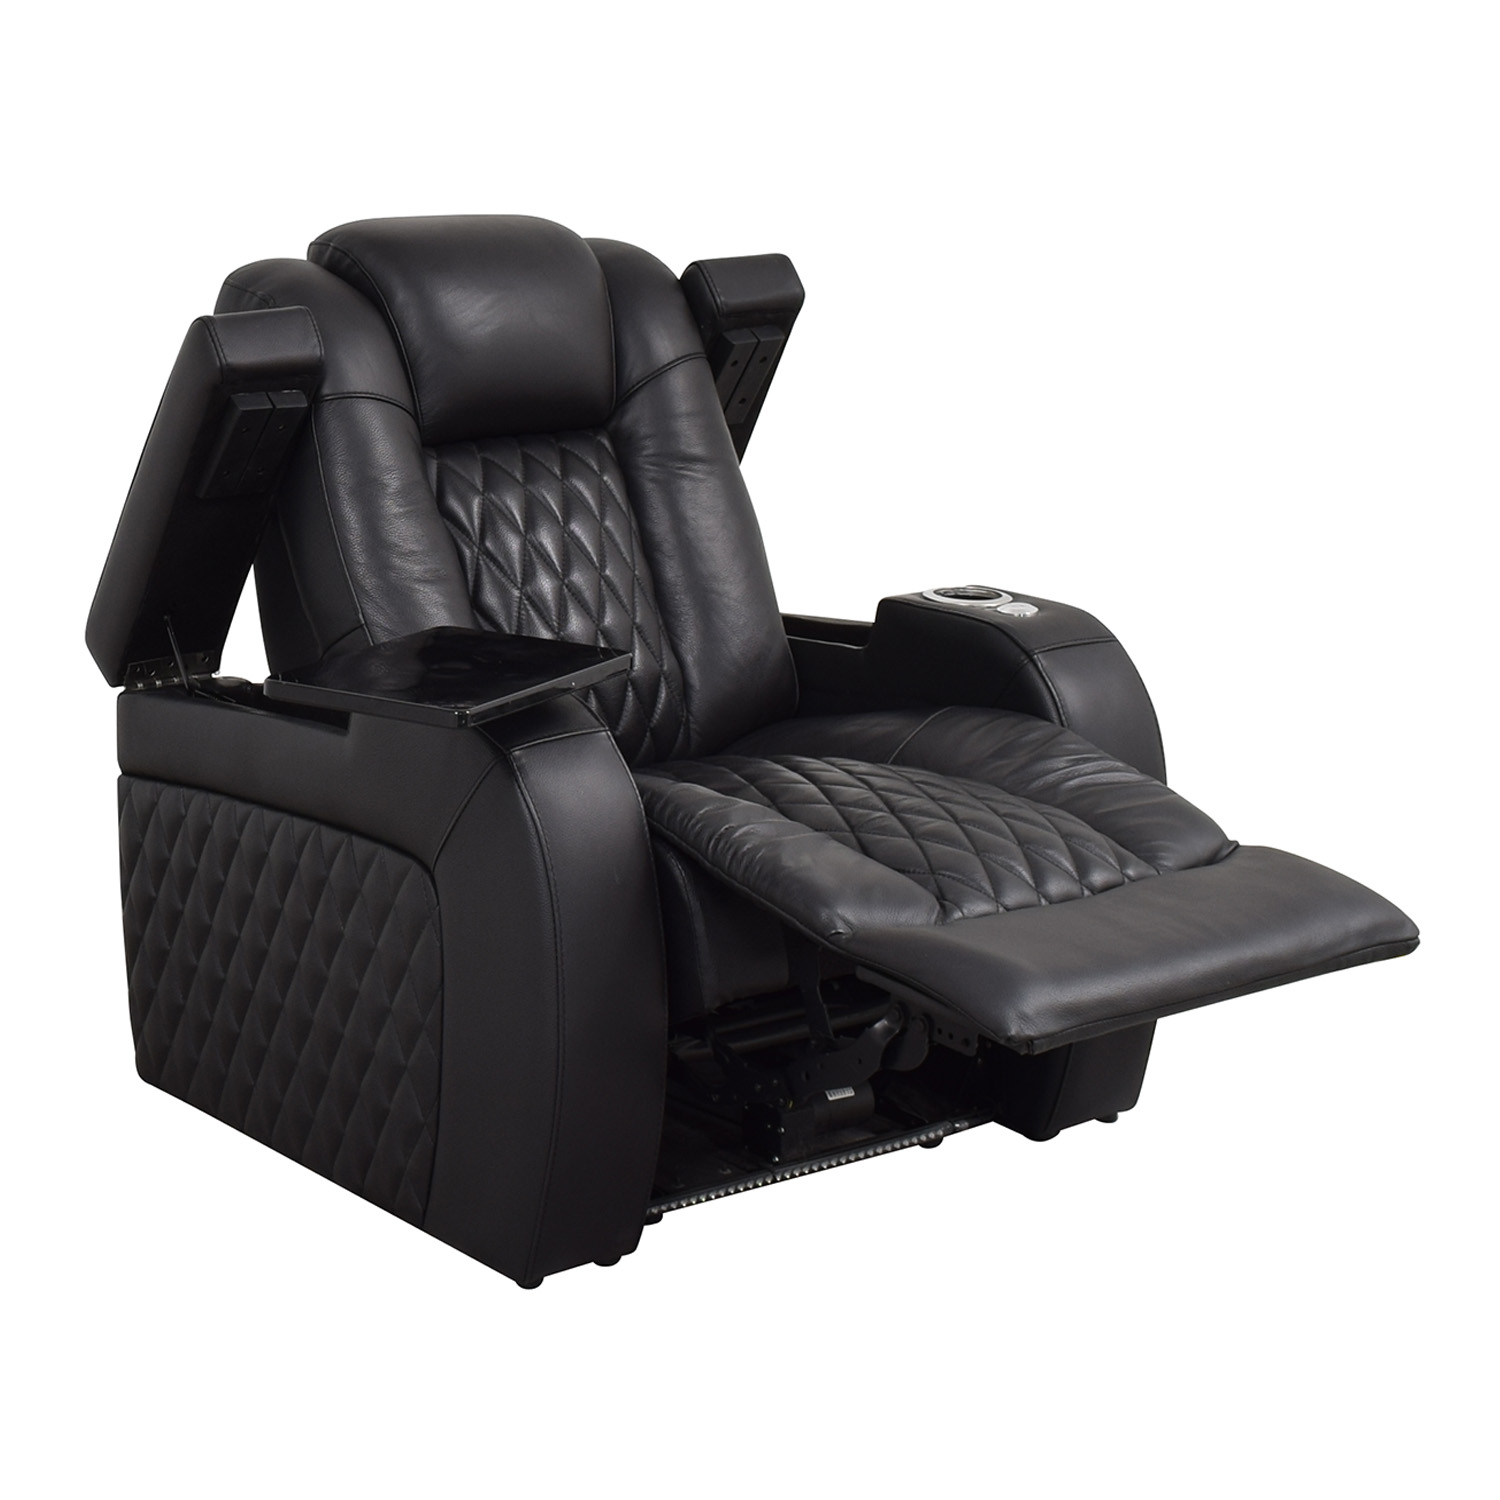 Seatcraft Seatcraft Diamante Home Theater Seating Leather Power Recliner nyc